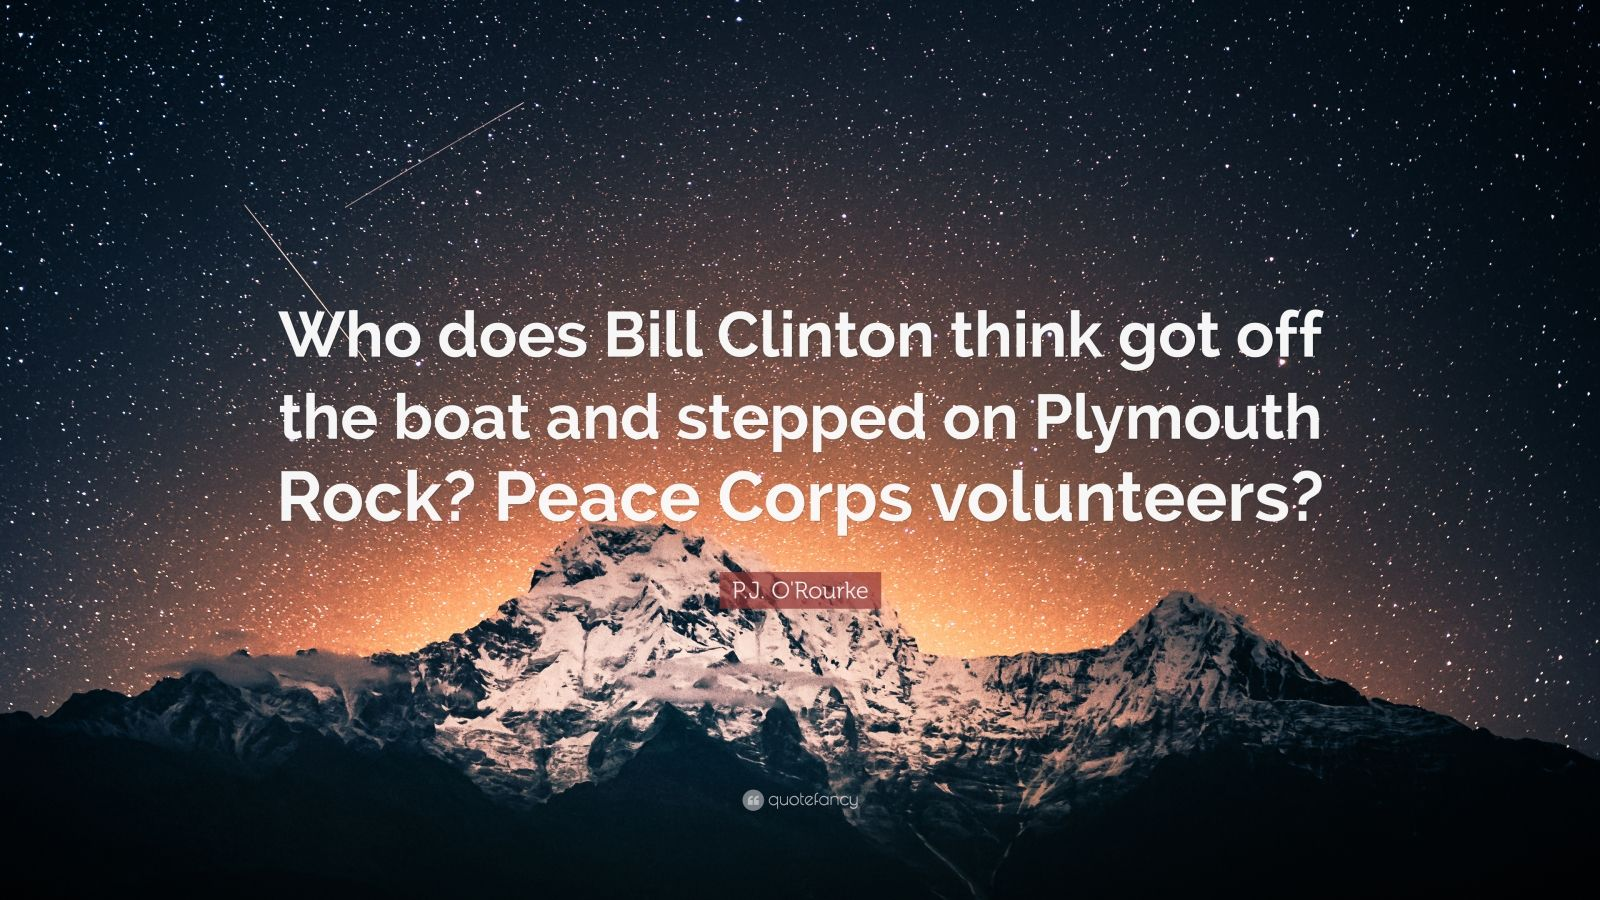 """P.J. O'Rourke Quote: """"Who does Bill Clinton think got off the boat and stepped on Plymouth Rock? Peace Corps volunteers?"""""""